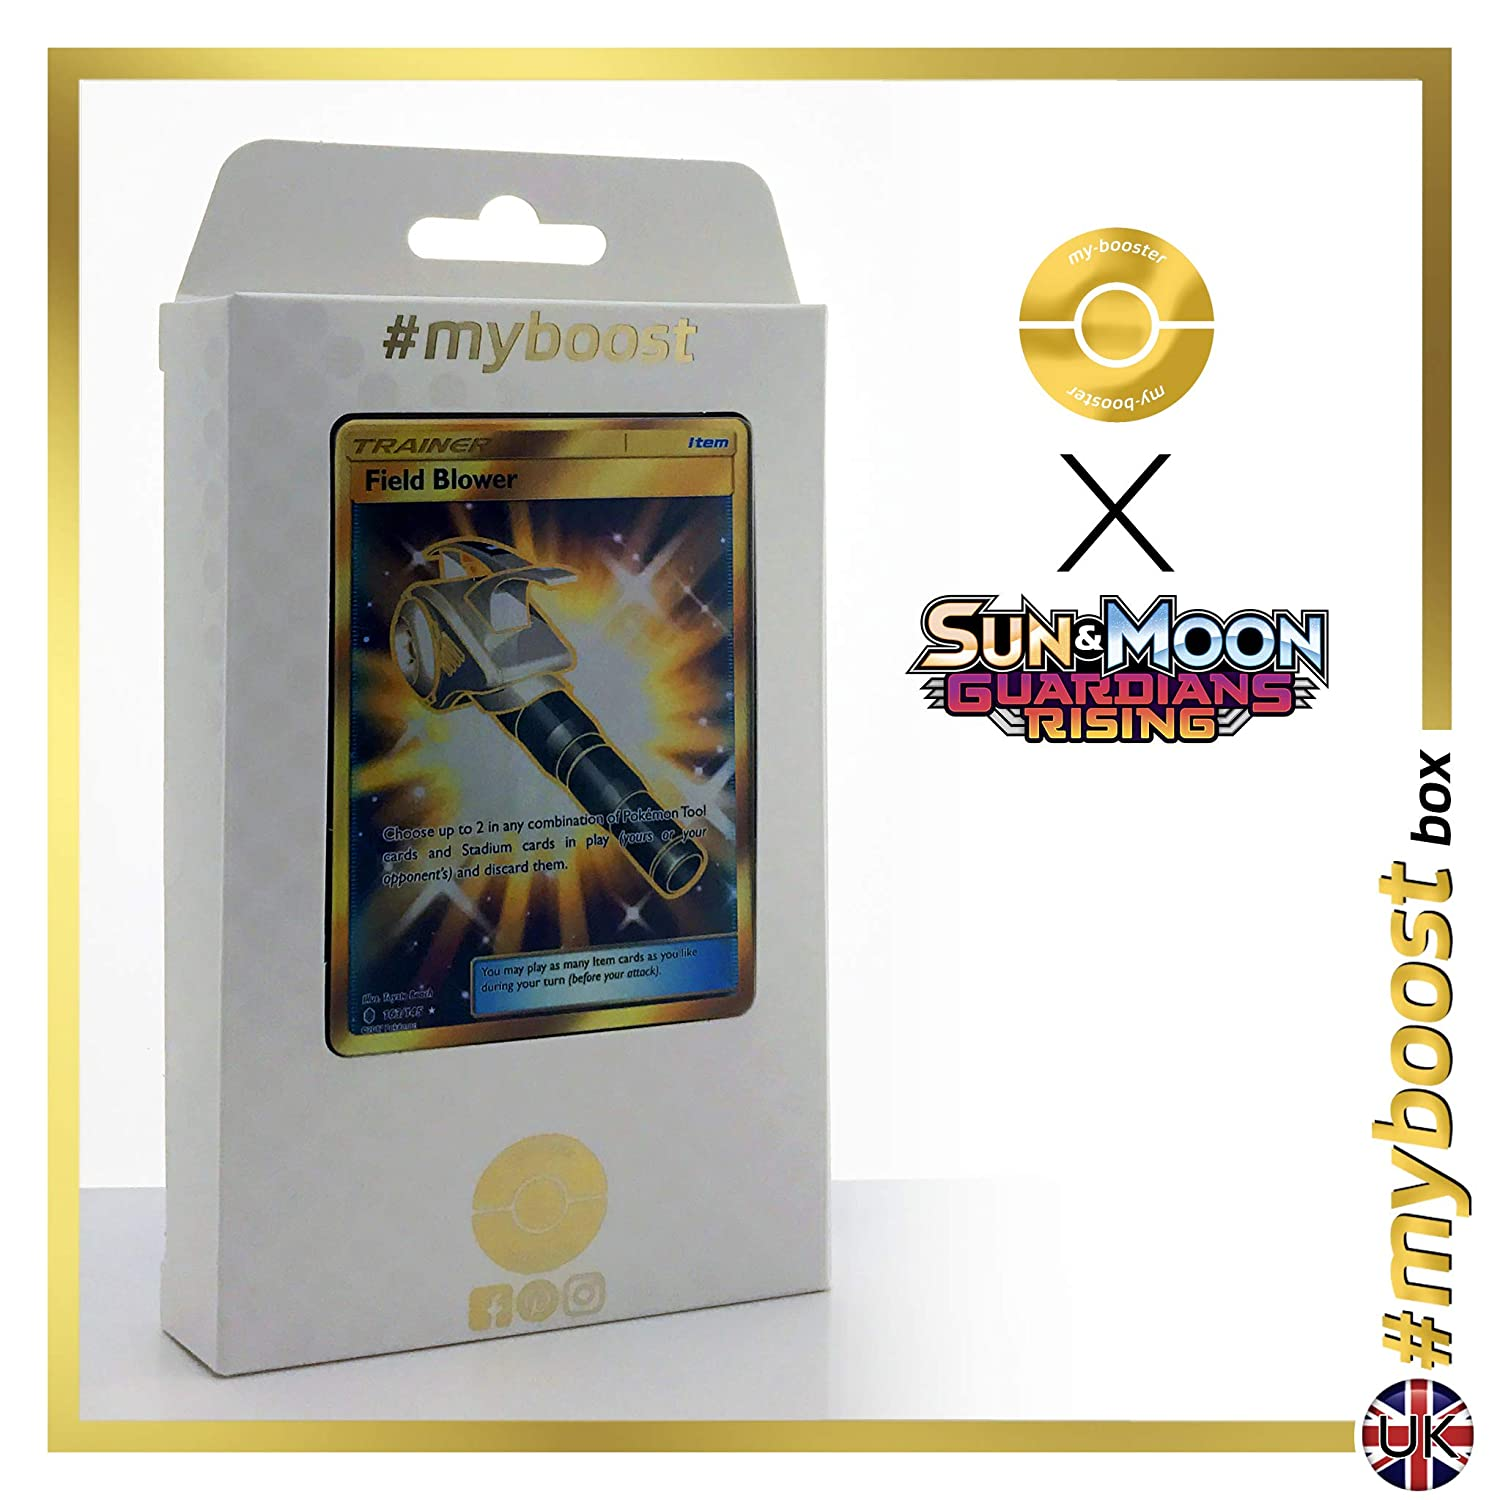 Box  myboost Trainer Field Blower Shiny 163 145 - Sun And Moon 2 - 10 English Pokemon Trading Cards